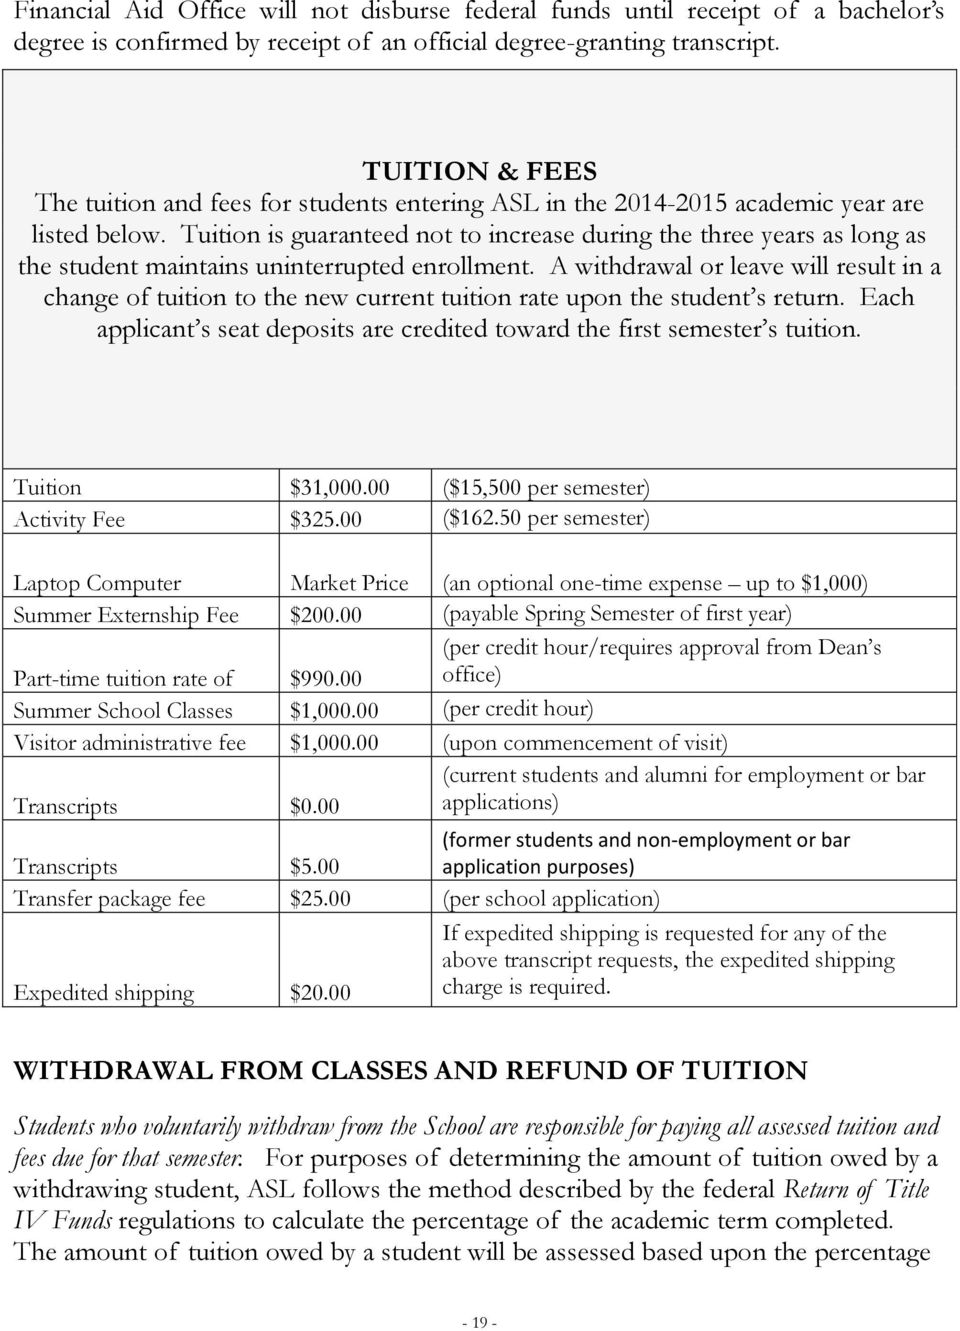 Tuition is guaranteed not to increase during the three years as long as the student maintains uninterrupted enrollment.